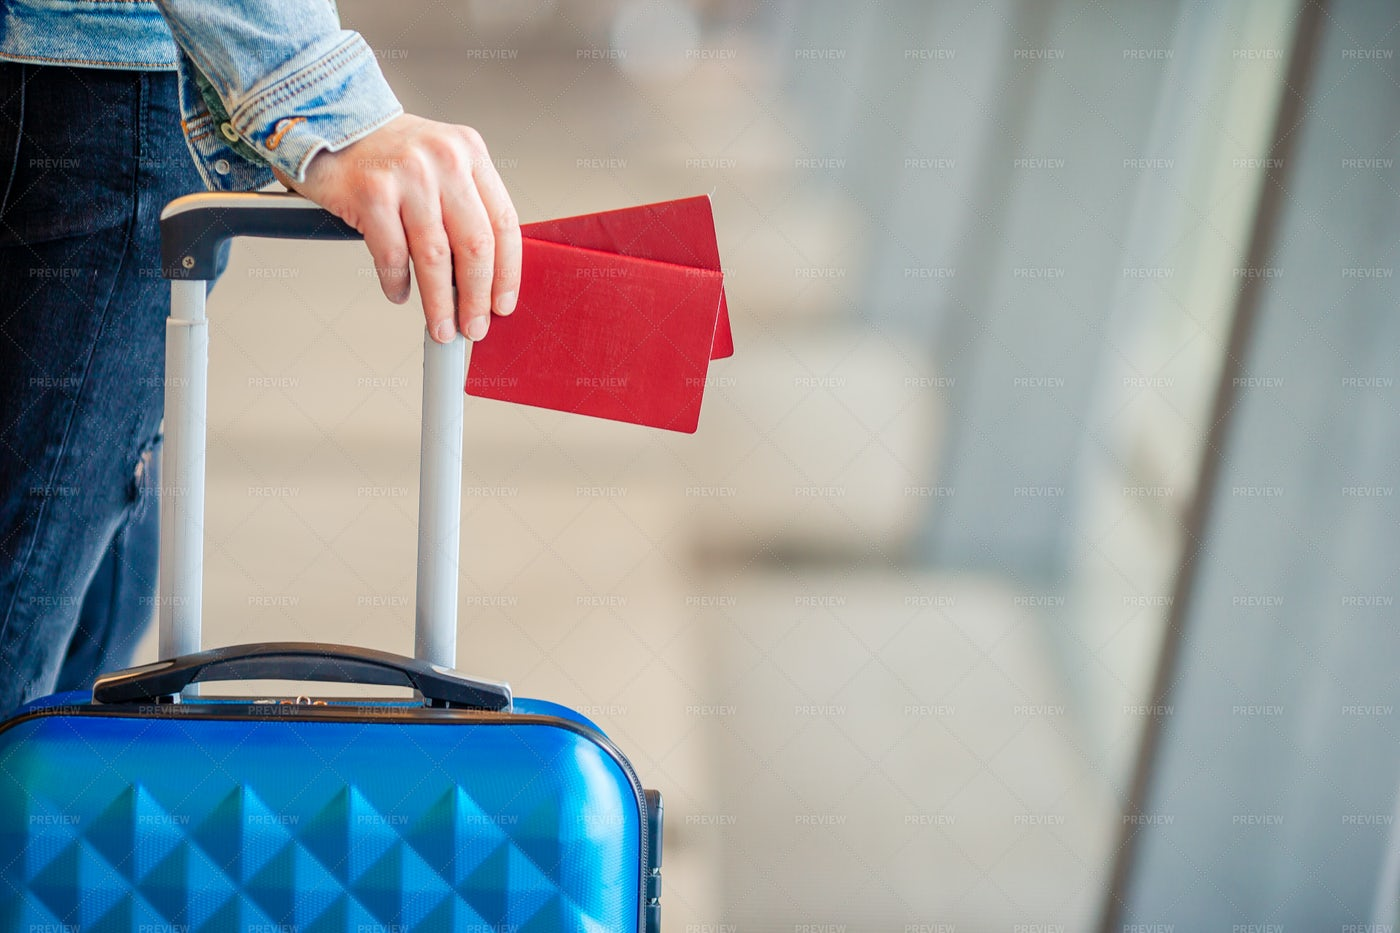 Tourist In Airport: Stock Photos